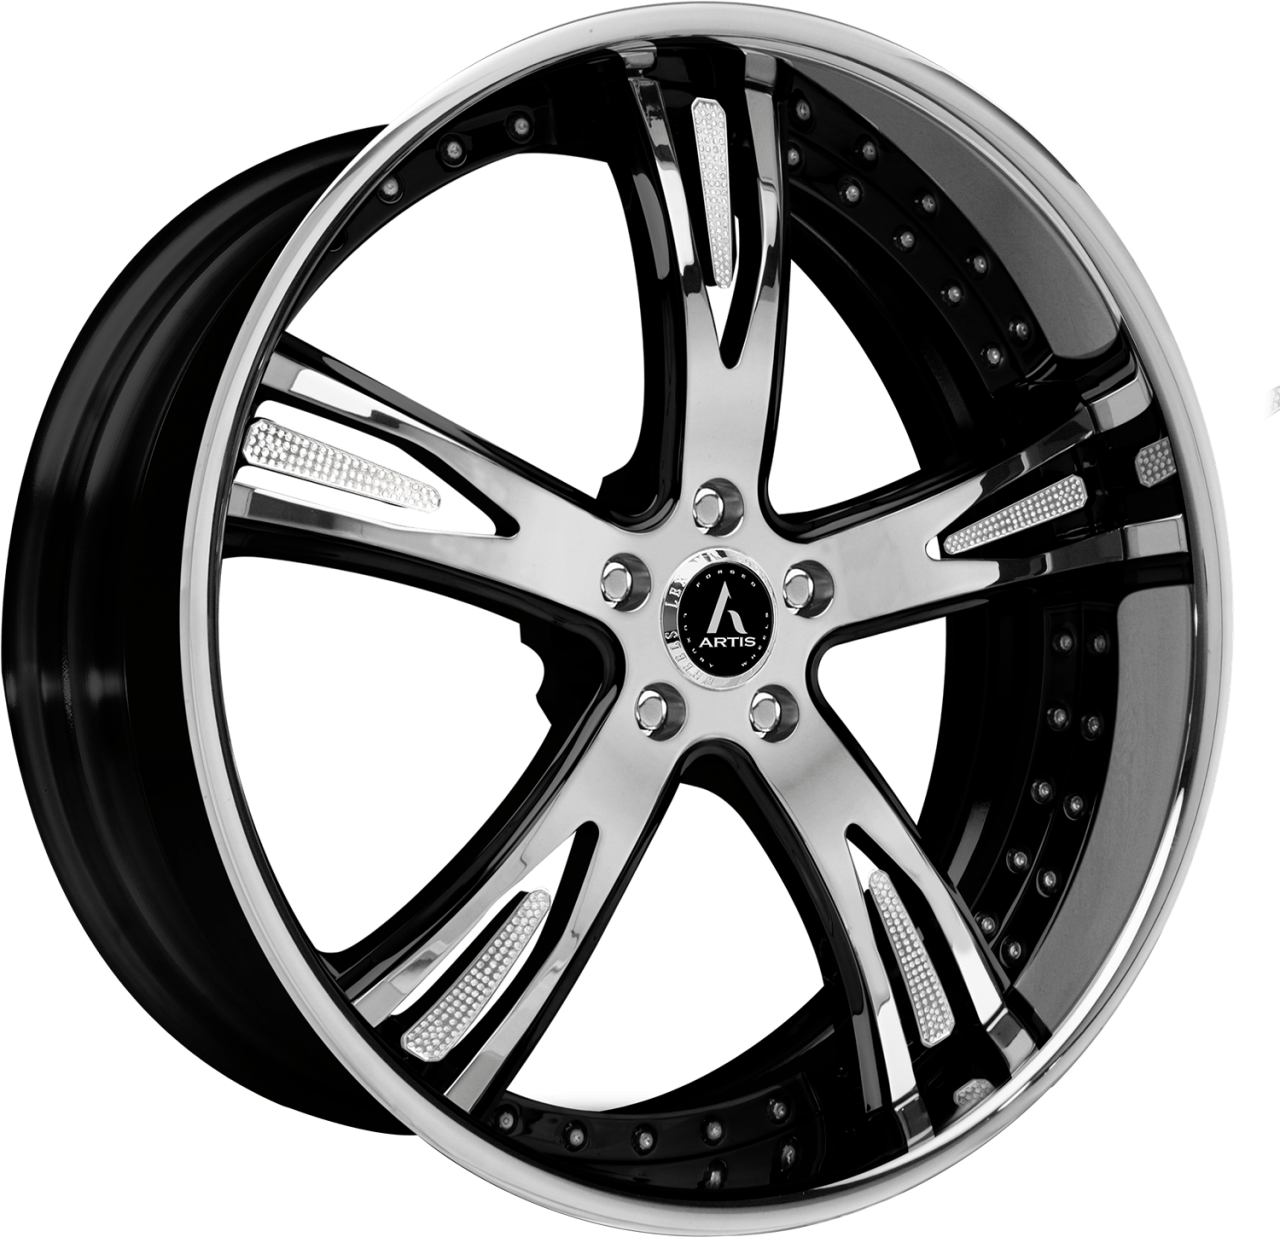 Artis Forged Freemont wheel with Custom Chrome and Black finish